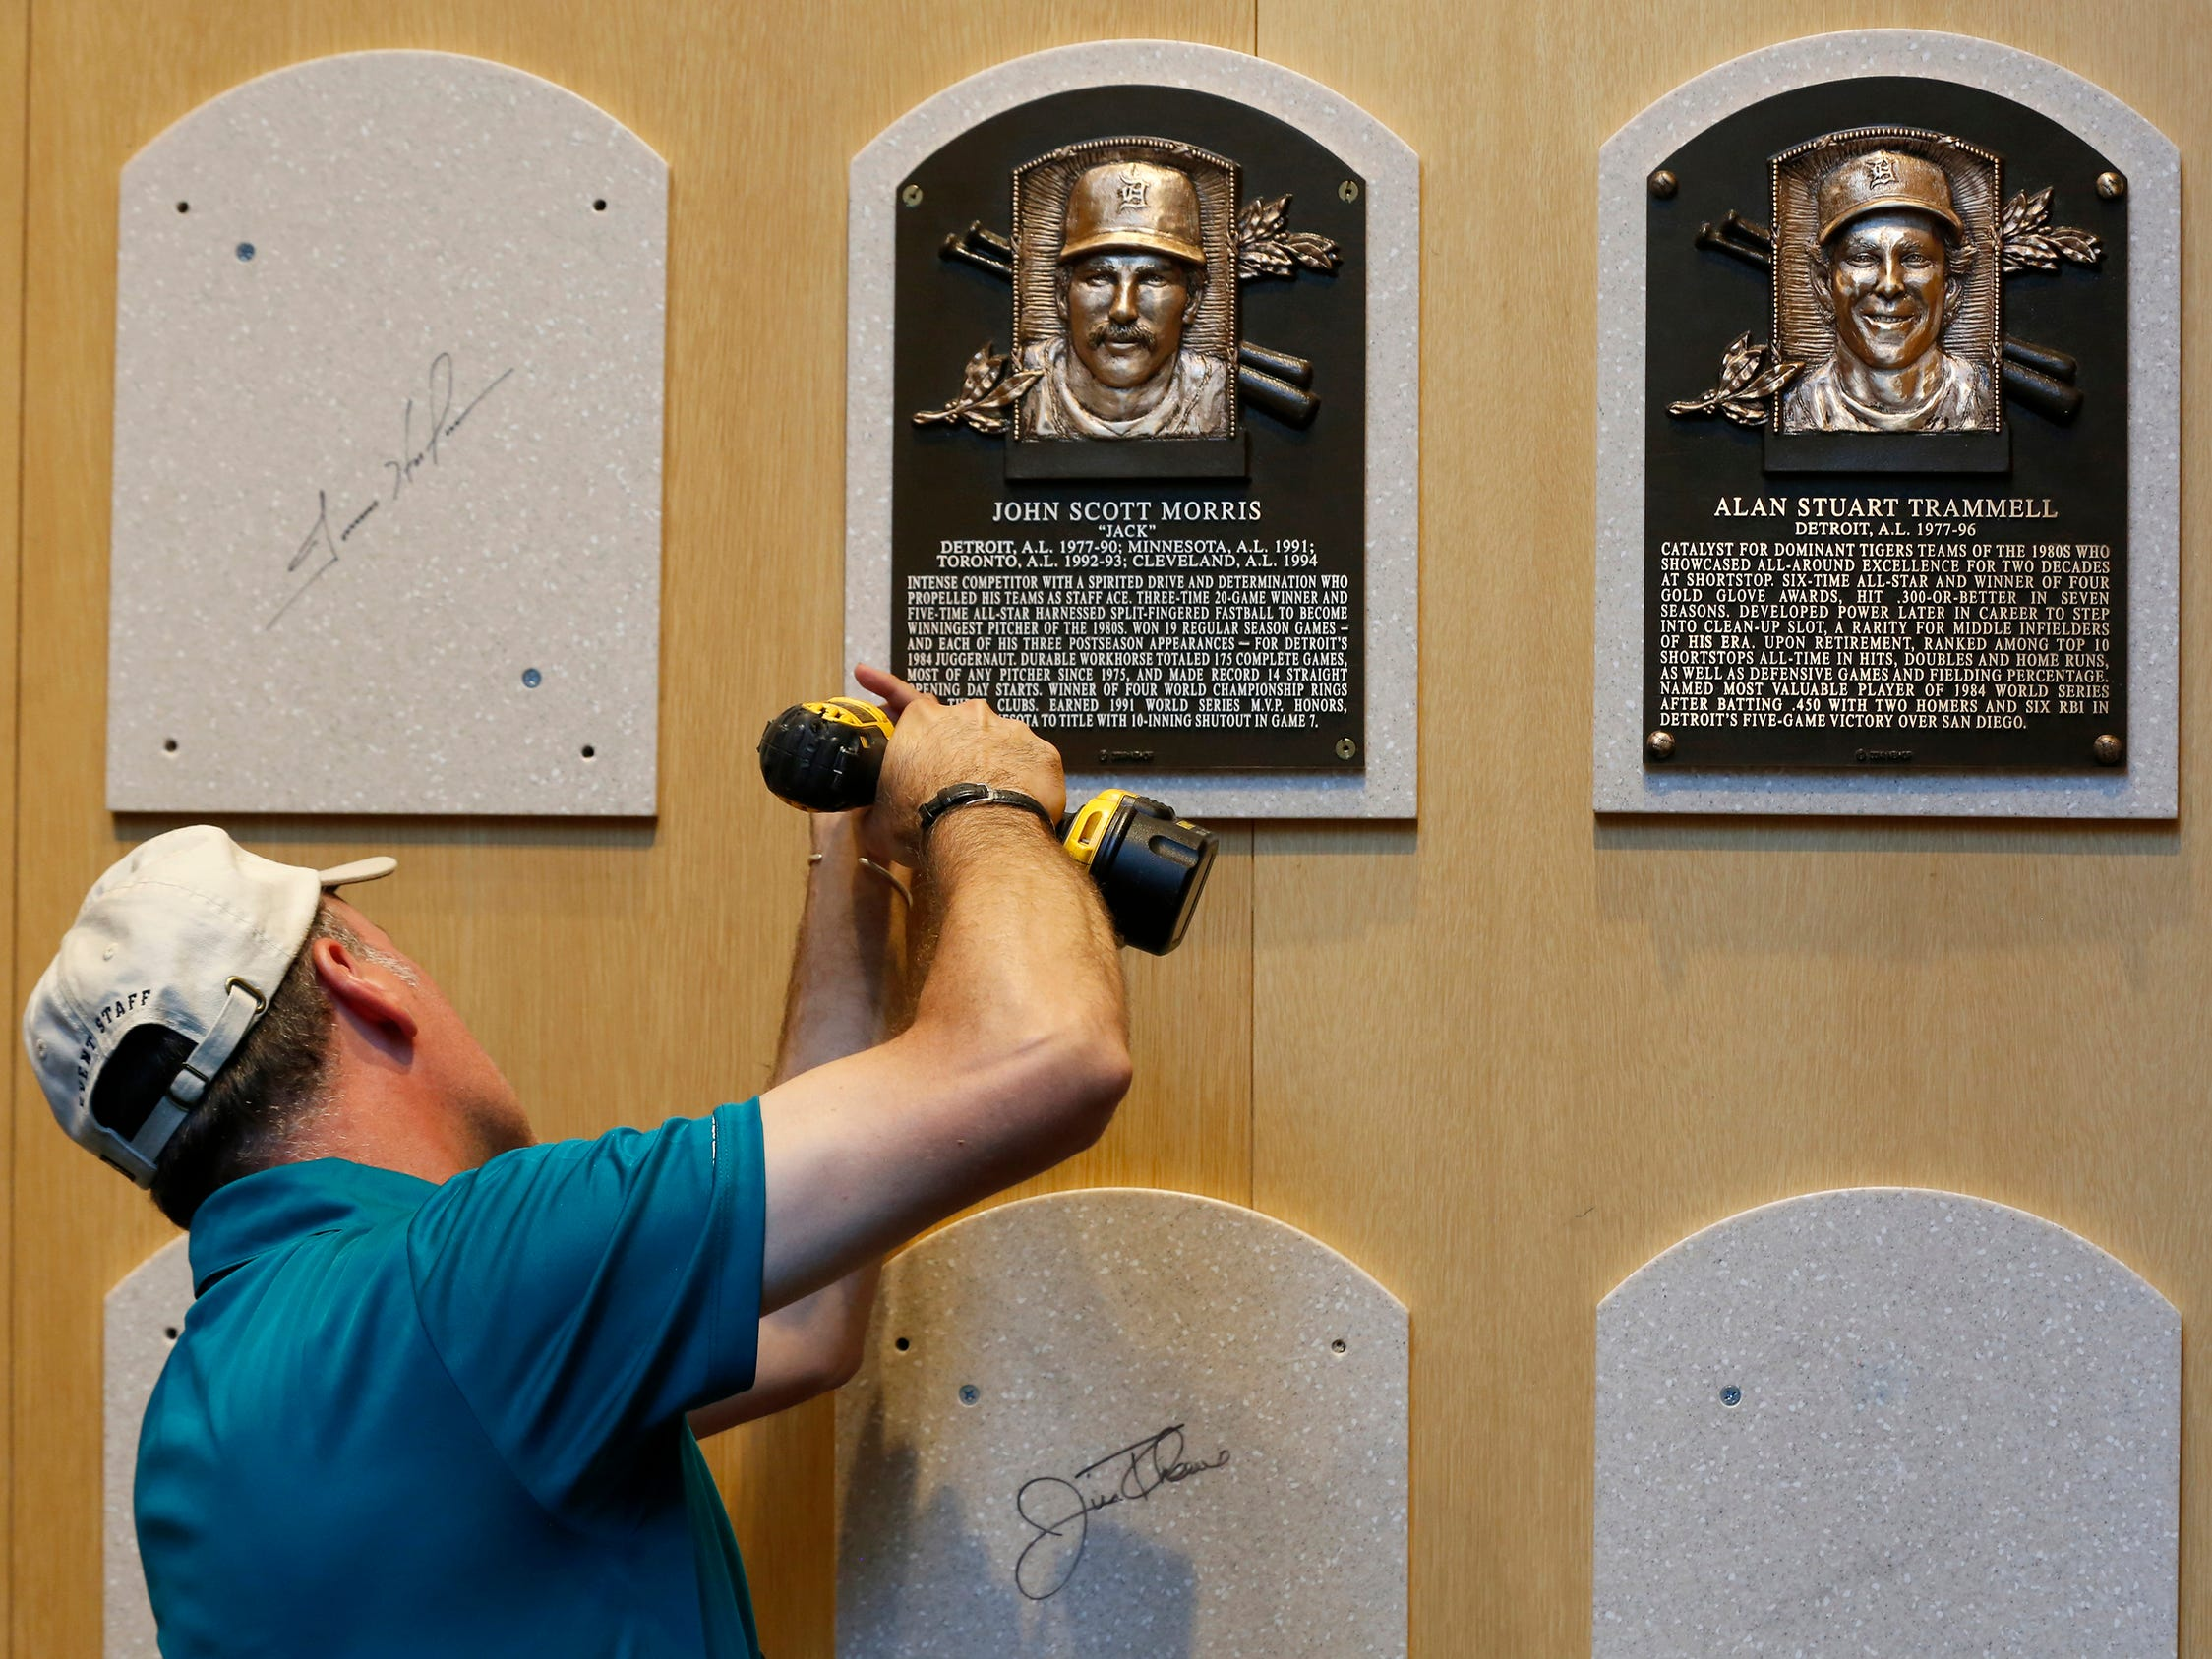 Mike Fink, manager of exhibits at the National Baseball Hall of Fame and Museum in Cooperstown, N.Y., installs the Hall of Fame plaque of former Detroit Tigers star Jack Morris, left, and Alan Trammell on Sunday, July 29, 2018 was over.